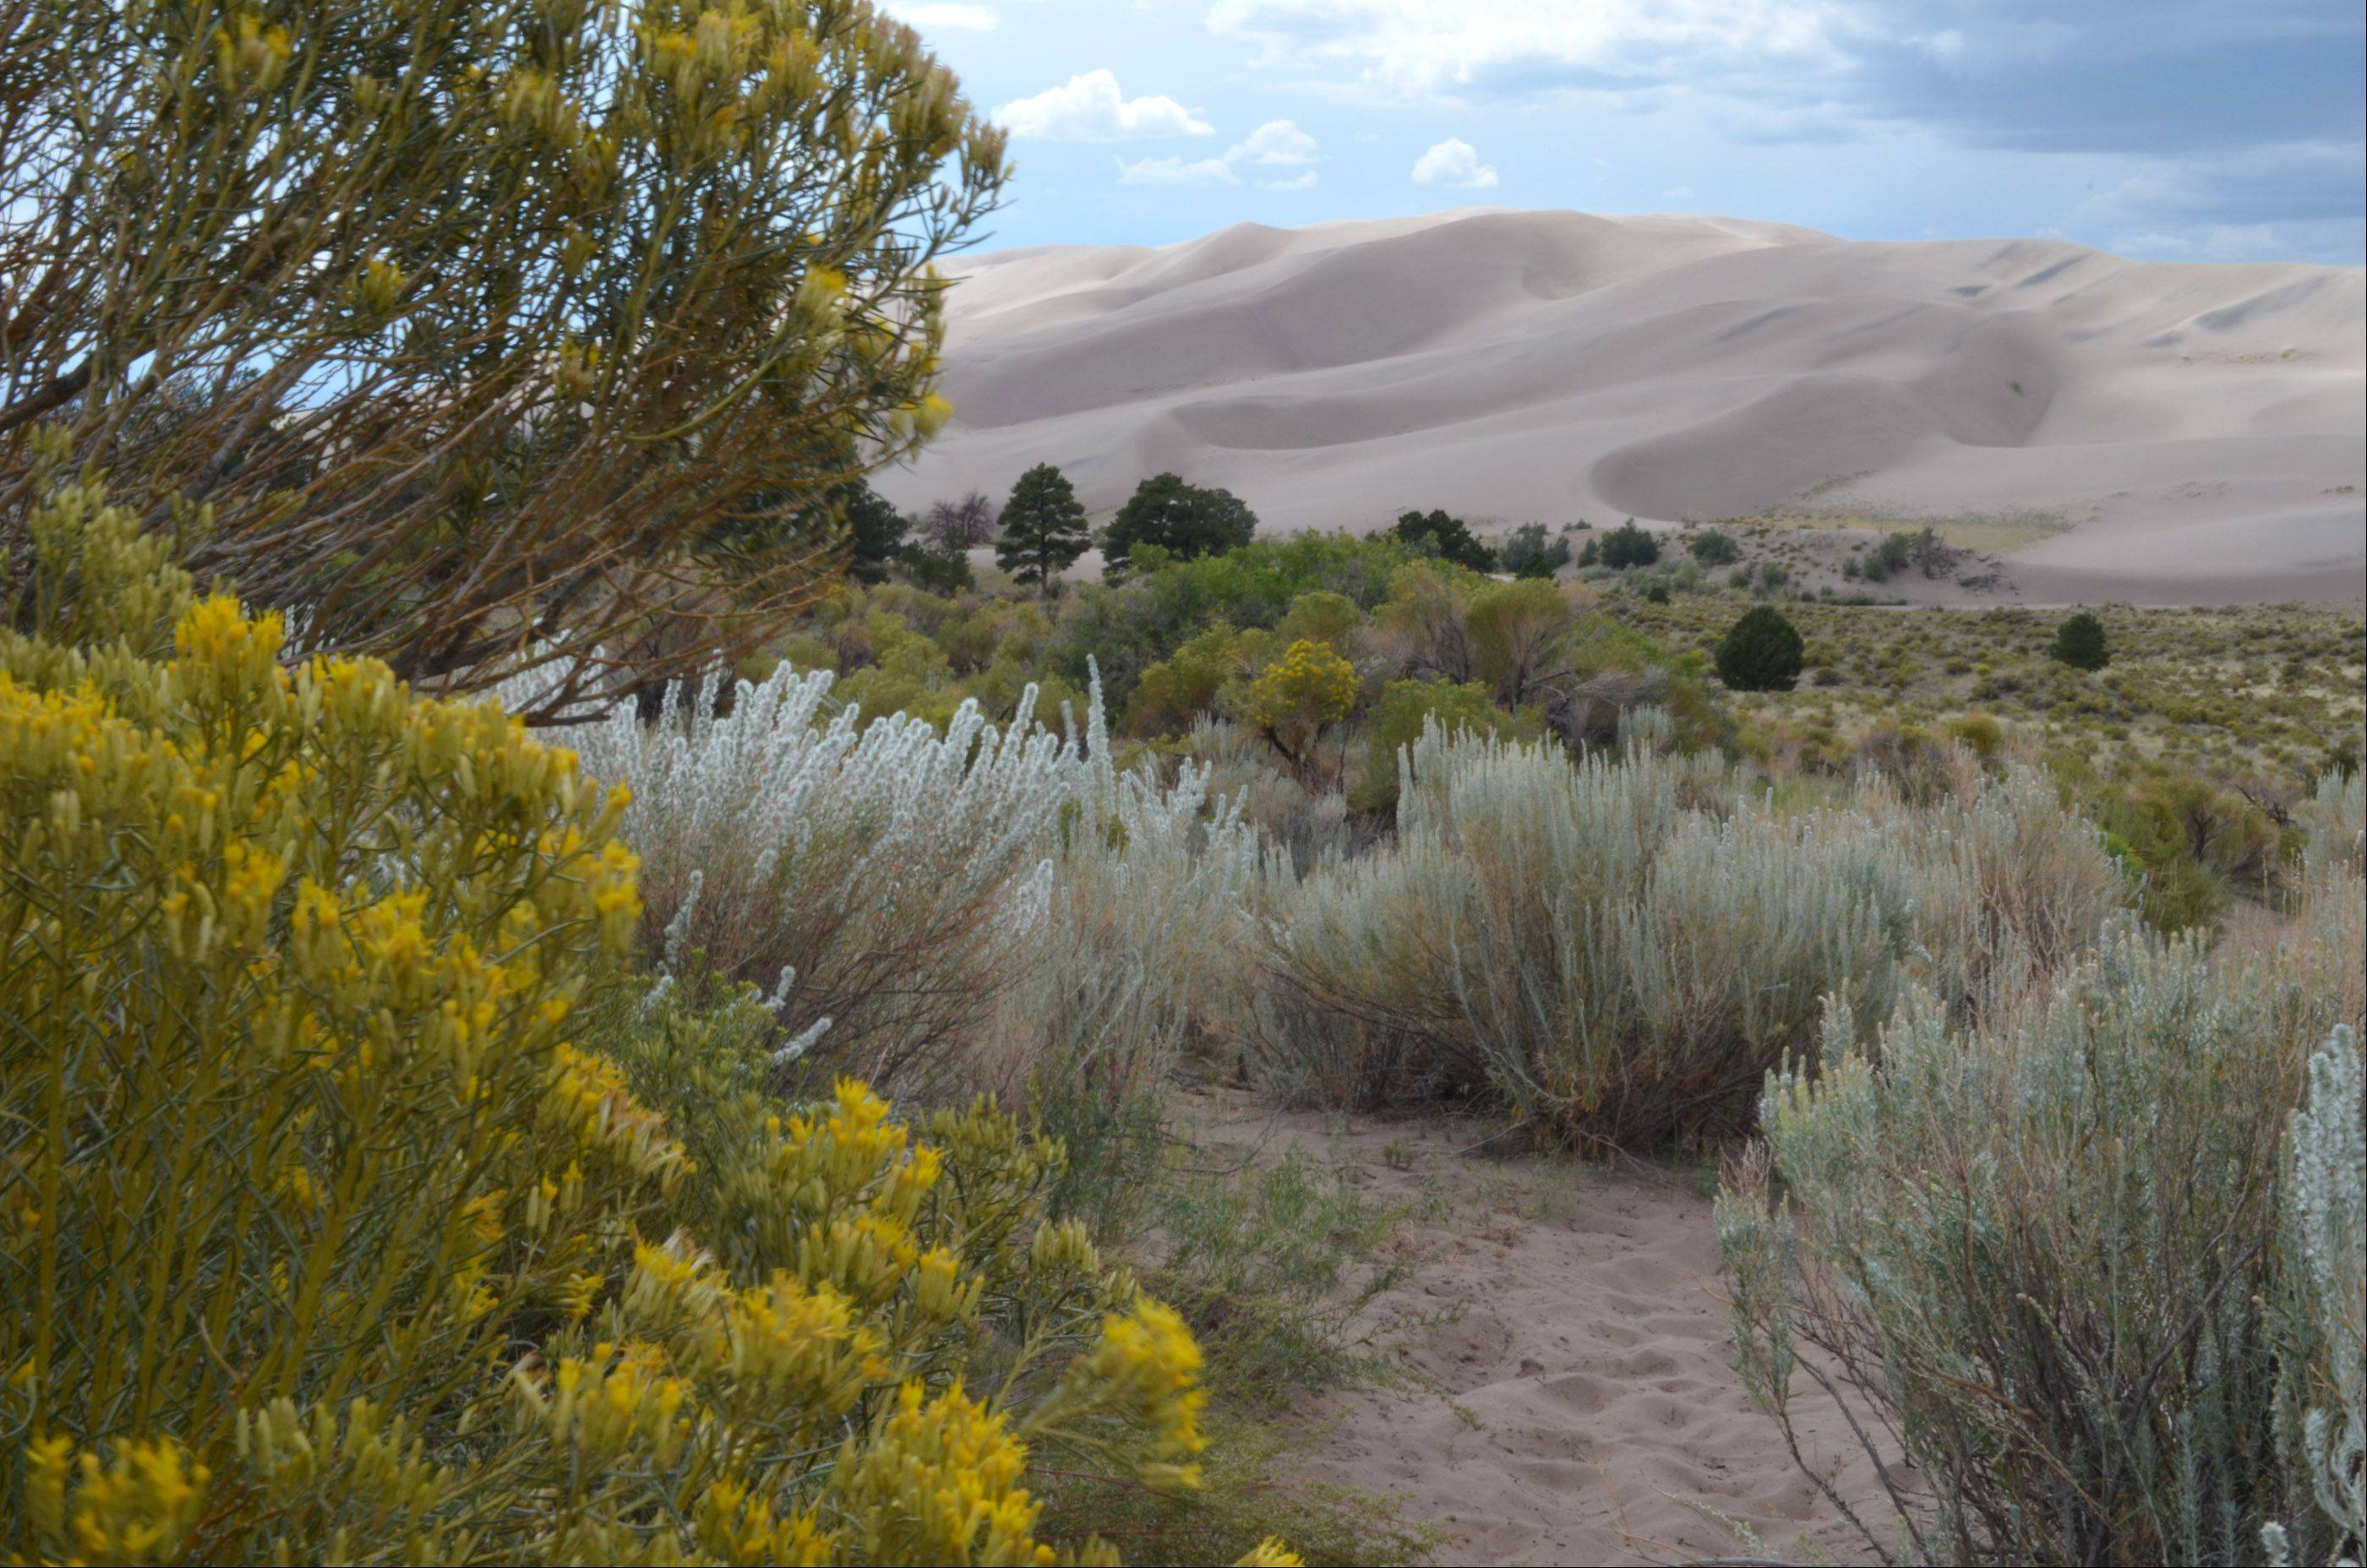 This is from our annual Daddy/Daughter camping trip. It was taken at a spot called the Sand Pit at Great Sand Dunes National Park on August 23, 2012.